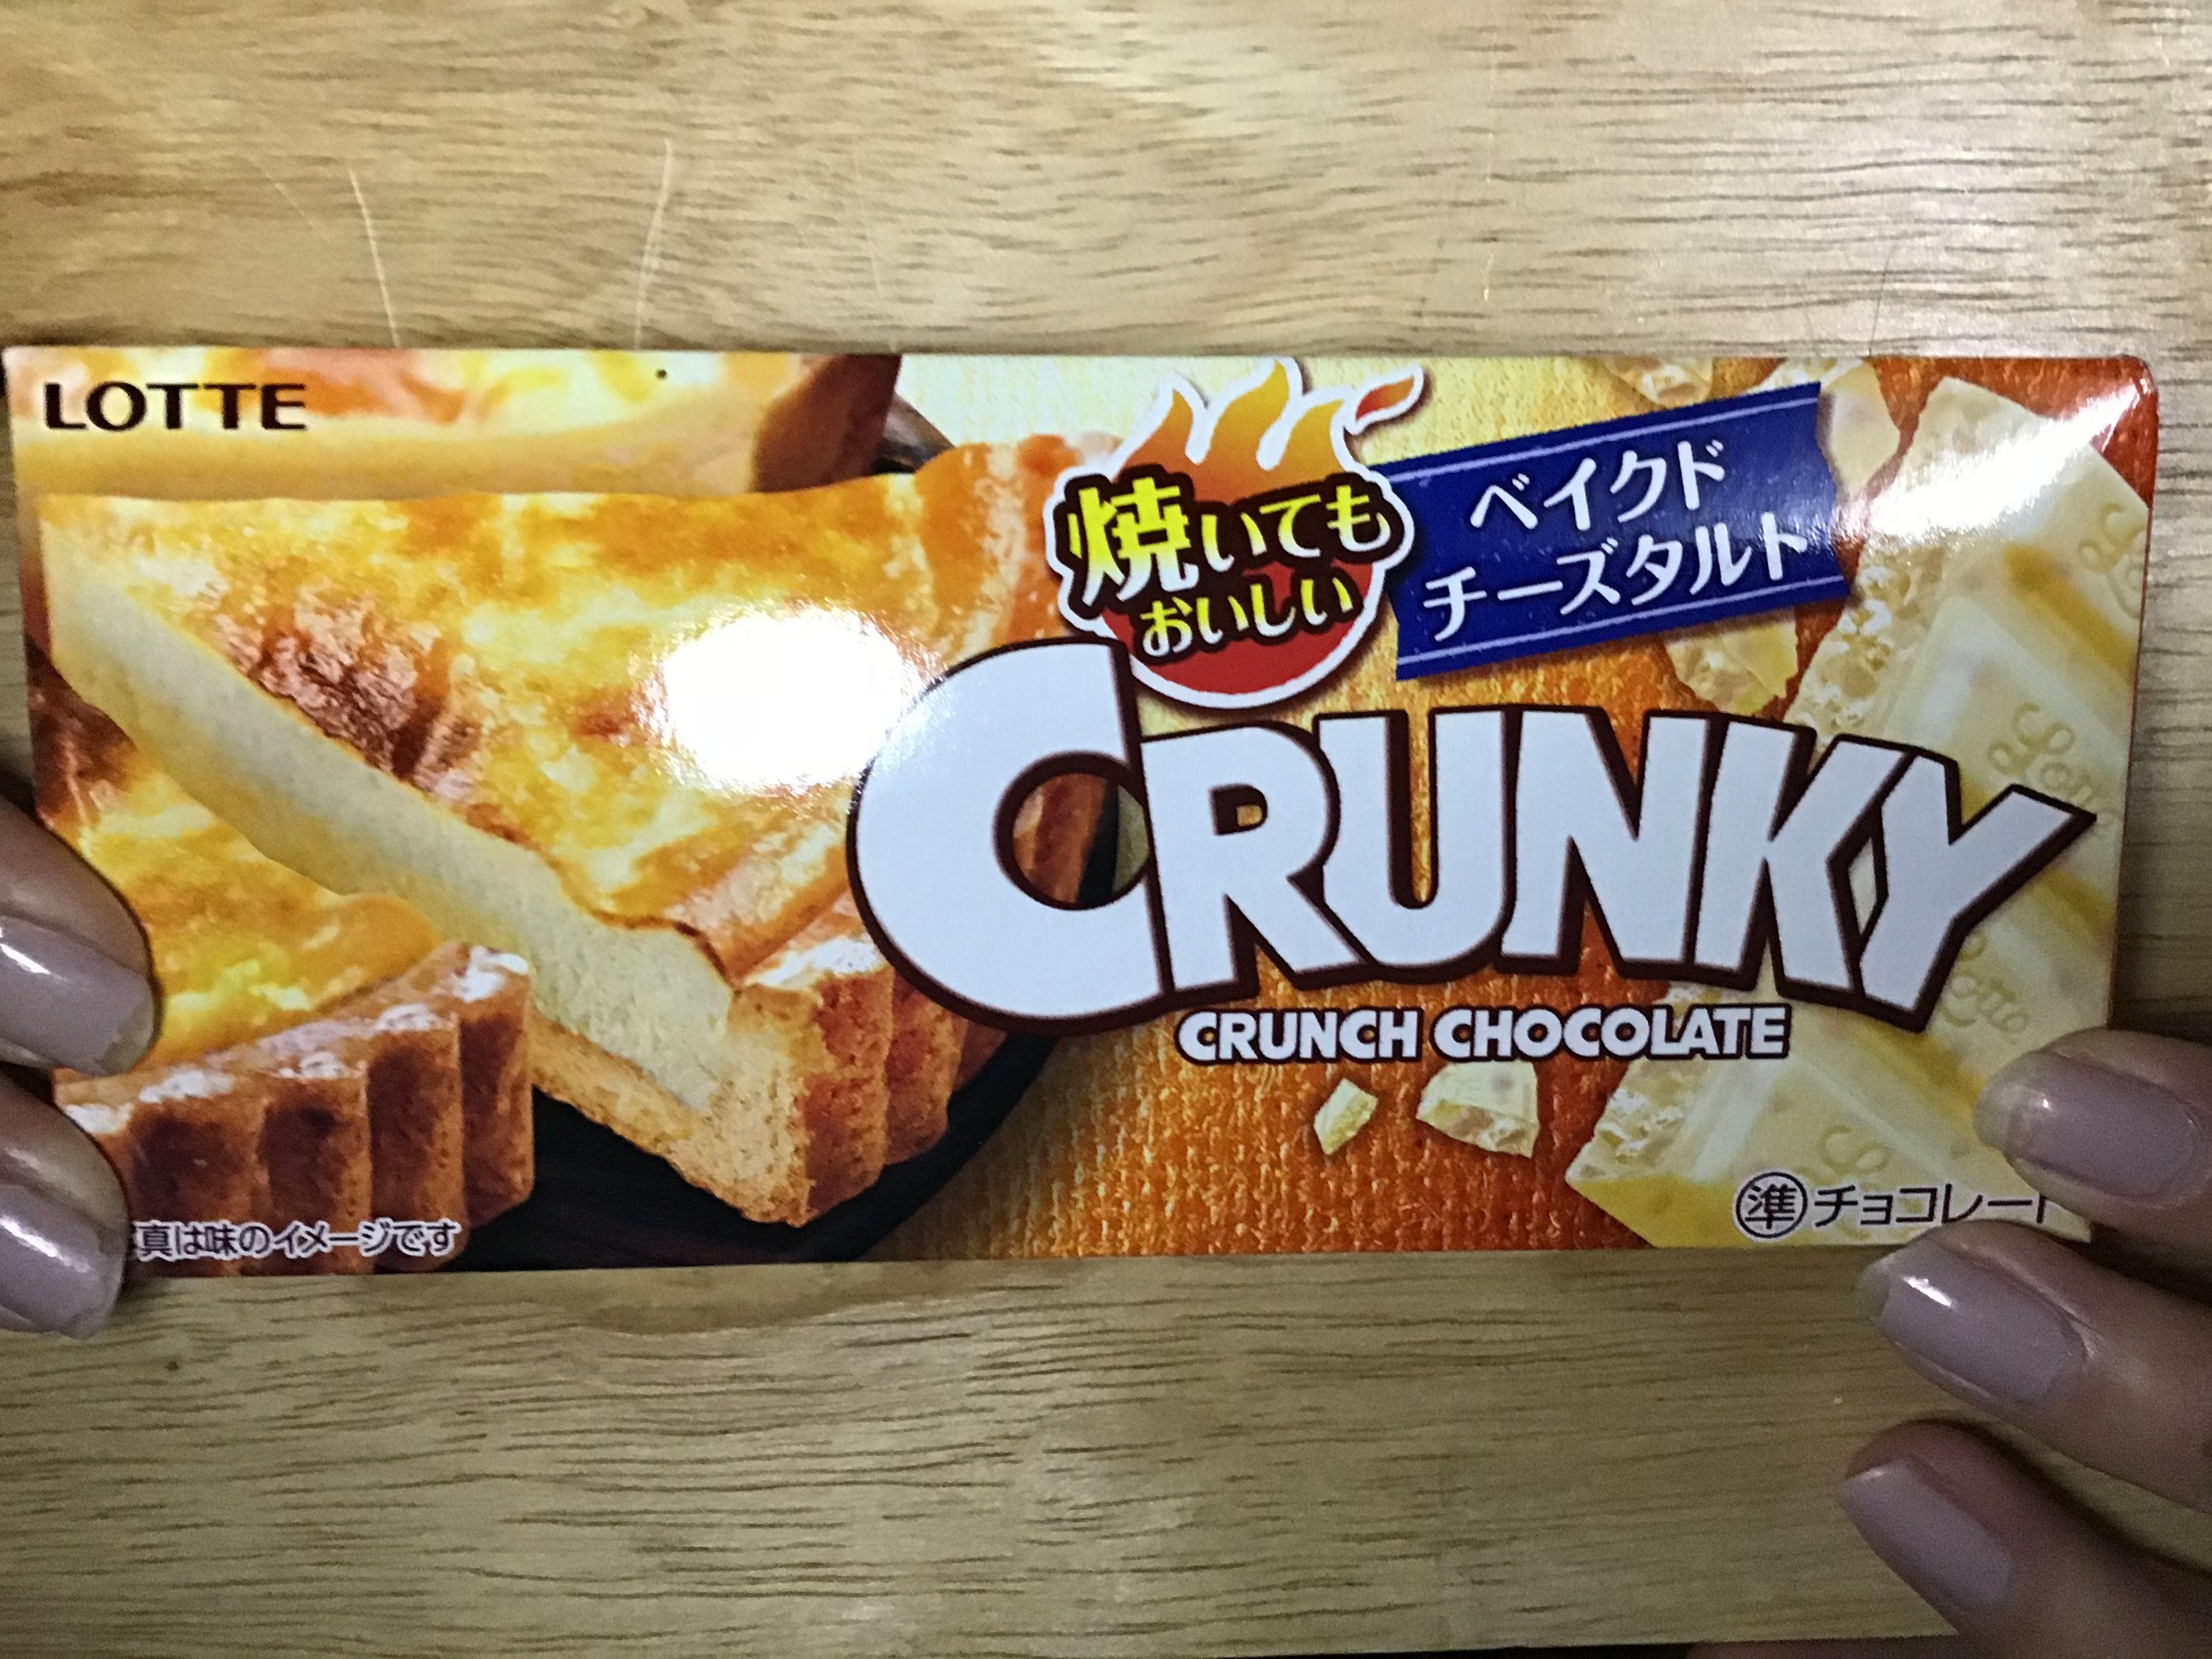 Lotte's ベイクドチーズタルト CRUNKY